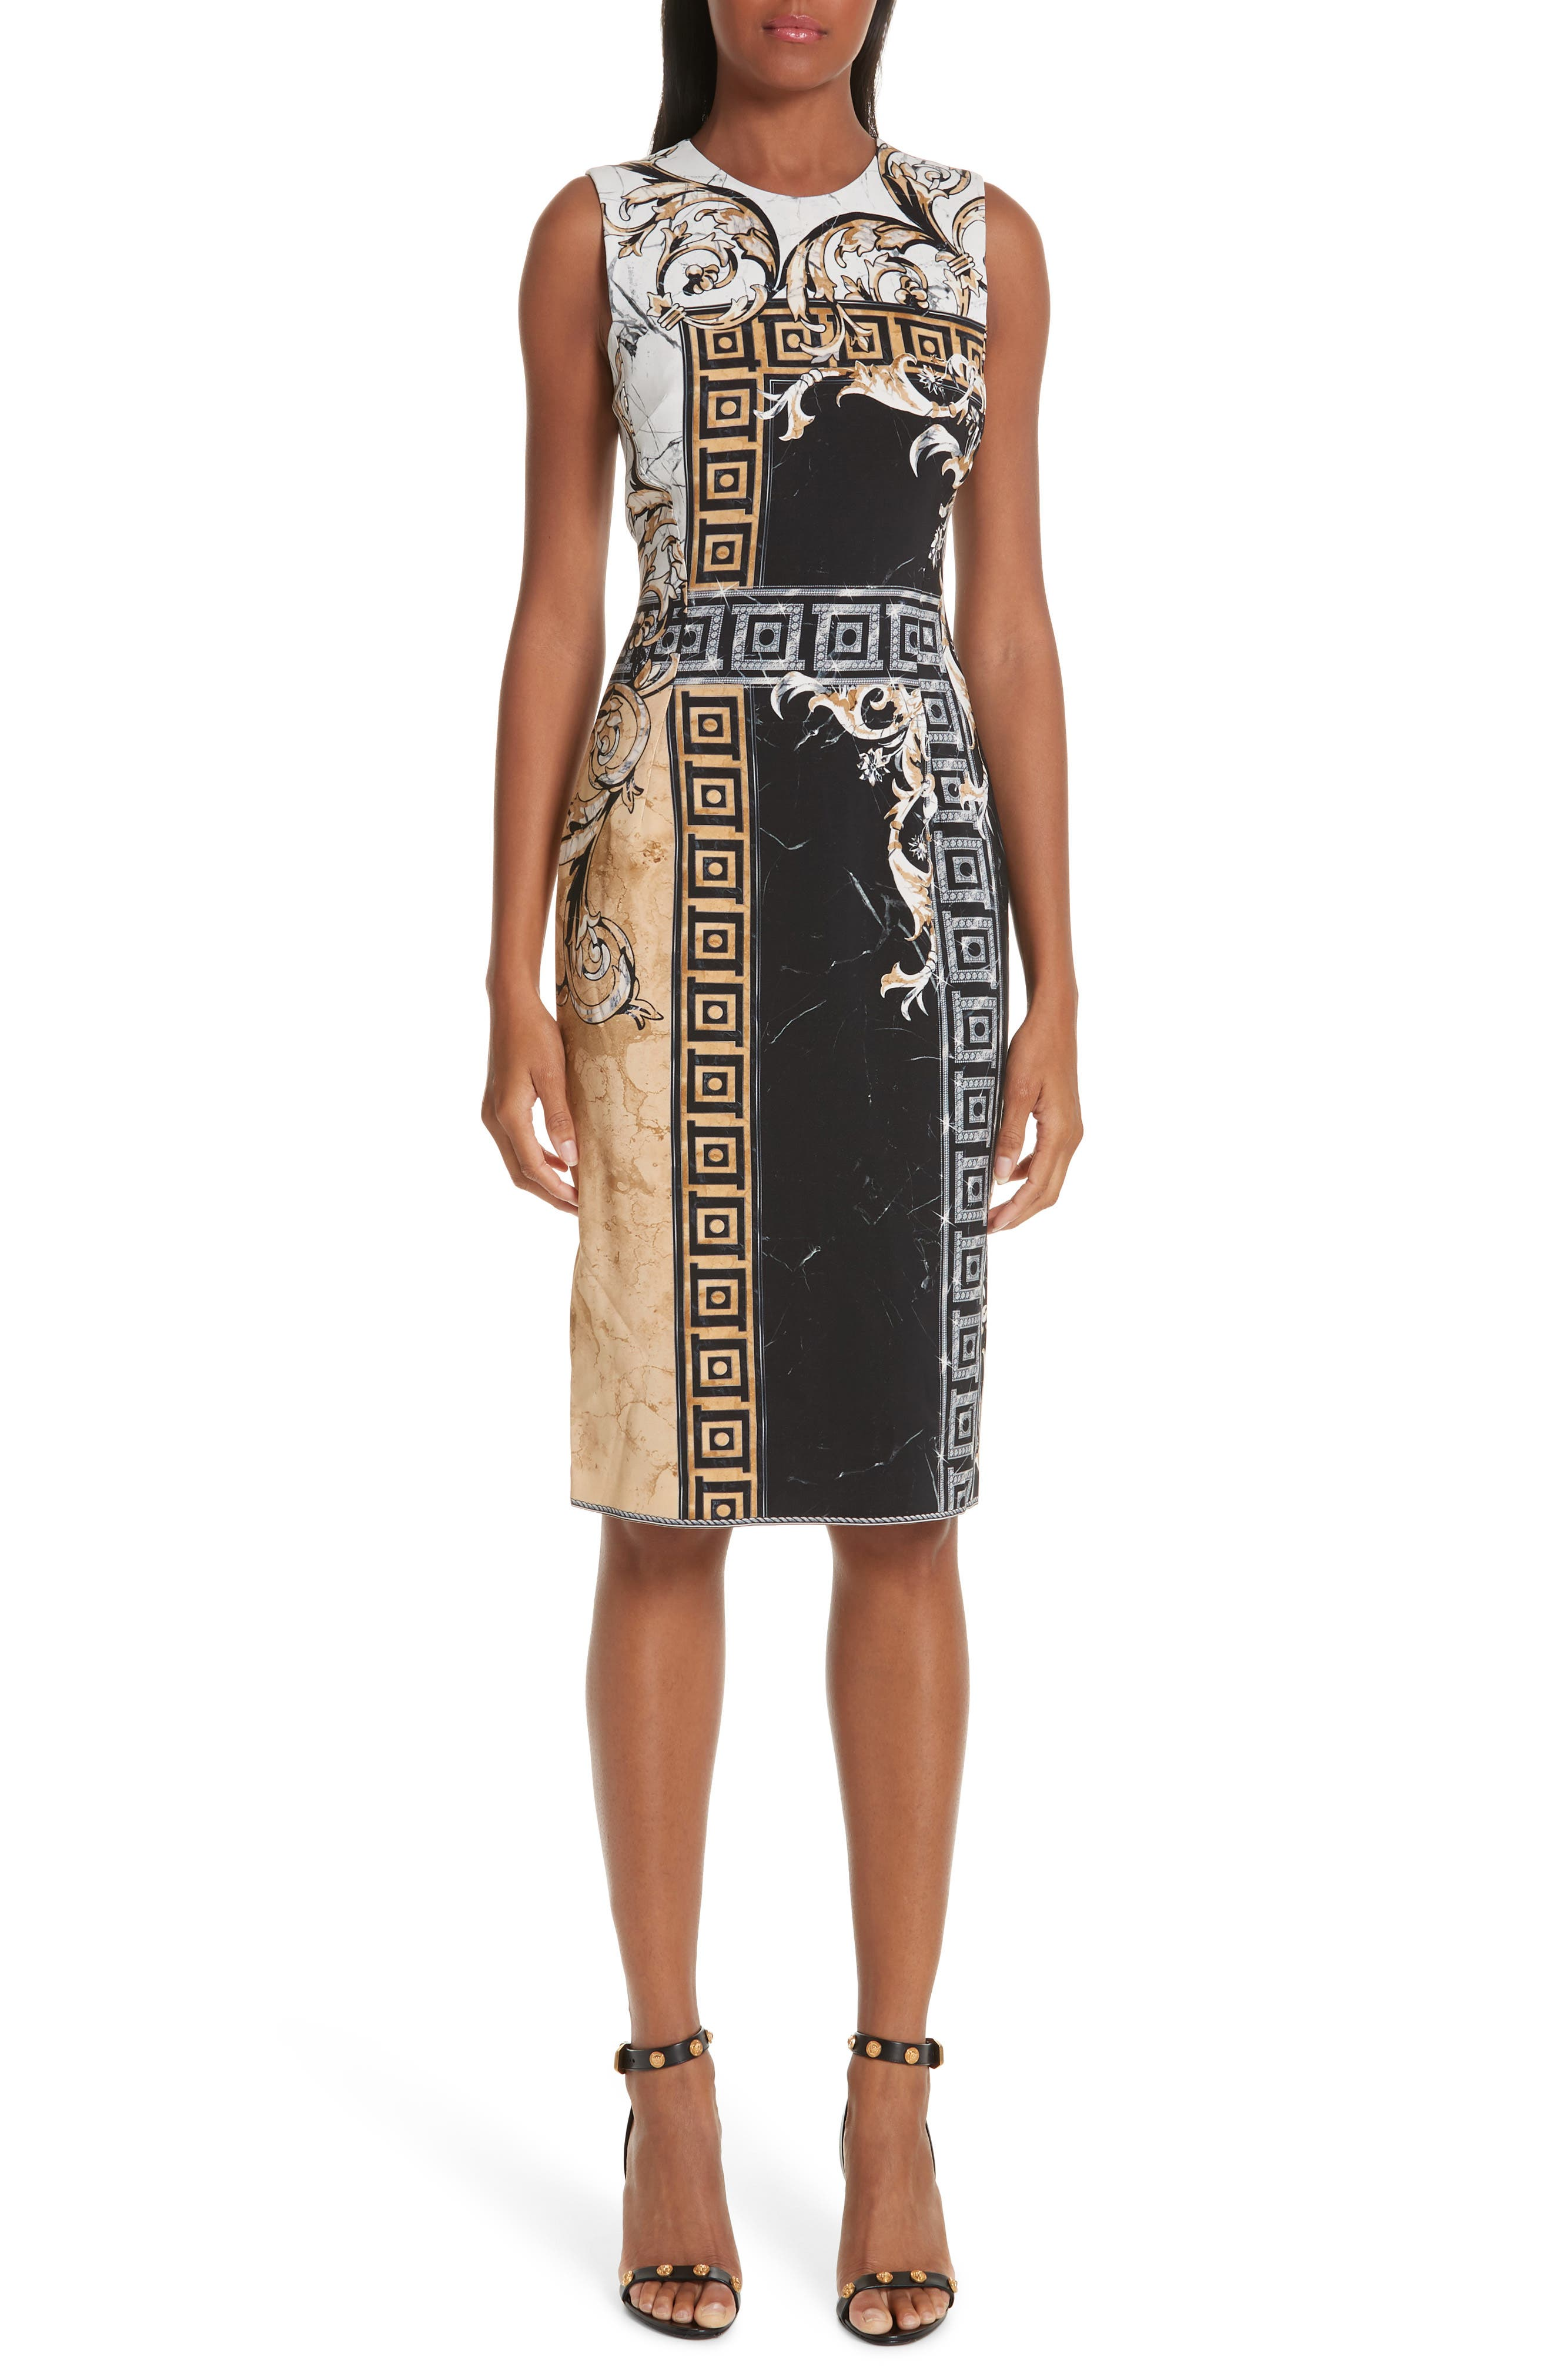 VERSACE COLLECTION, Marble Print Sheath Dress, Main thumbnail 1, color, BLACK